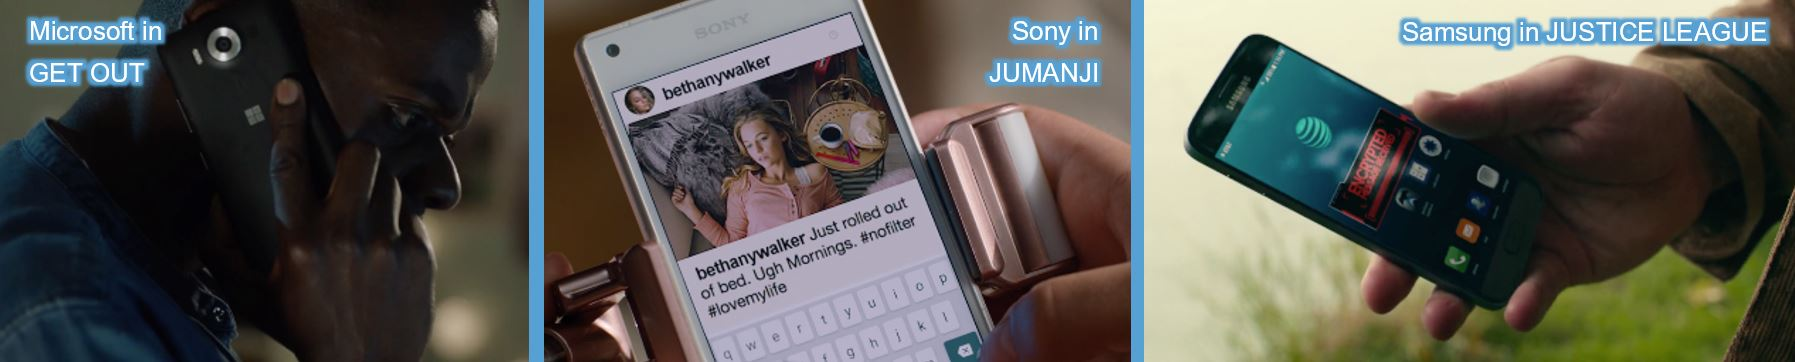 mobile phones product placement product category brand leader concave brand tracking get out microsoft sony jumanji samsung justice league